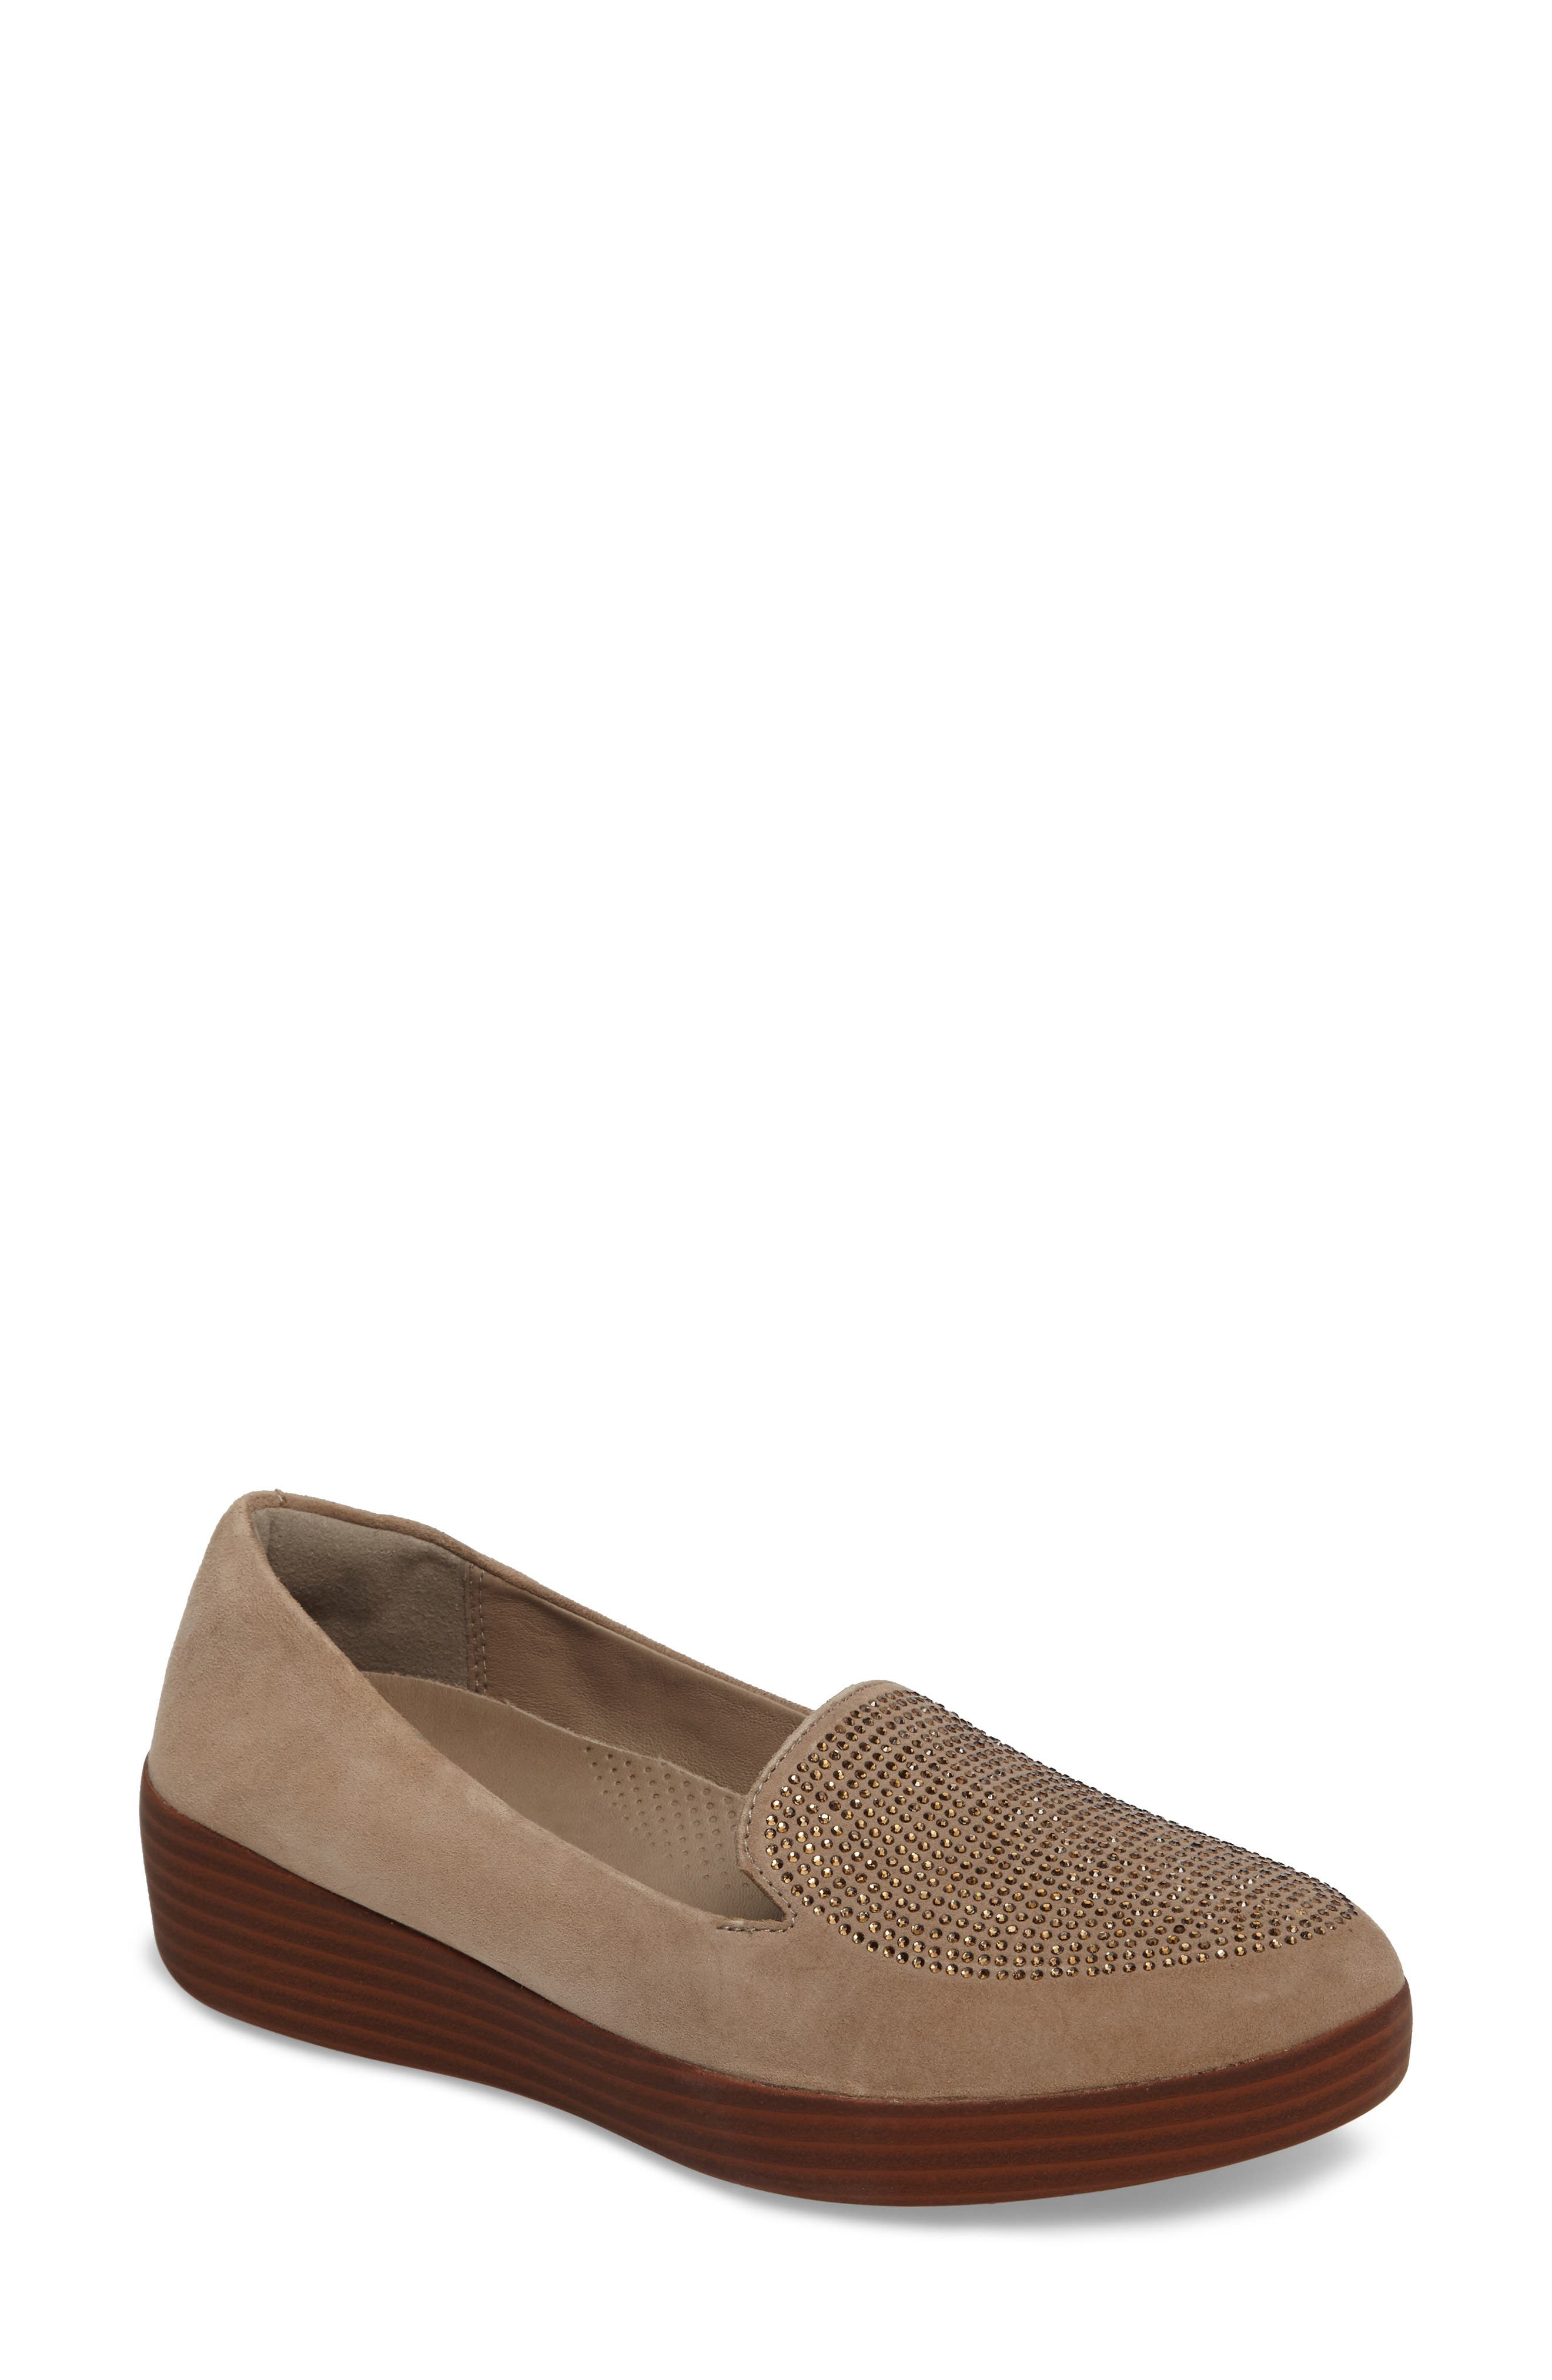 Sparkly Sneakerloafer Slip-On,                             Main thumbnail 1, color,                             Desert Stone Suede